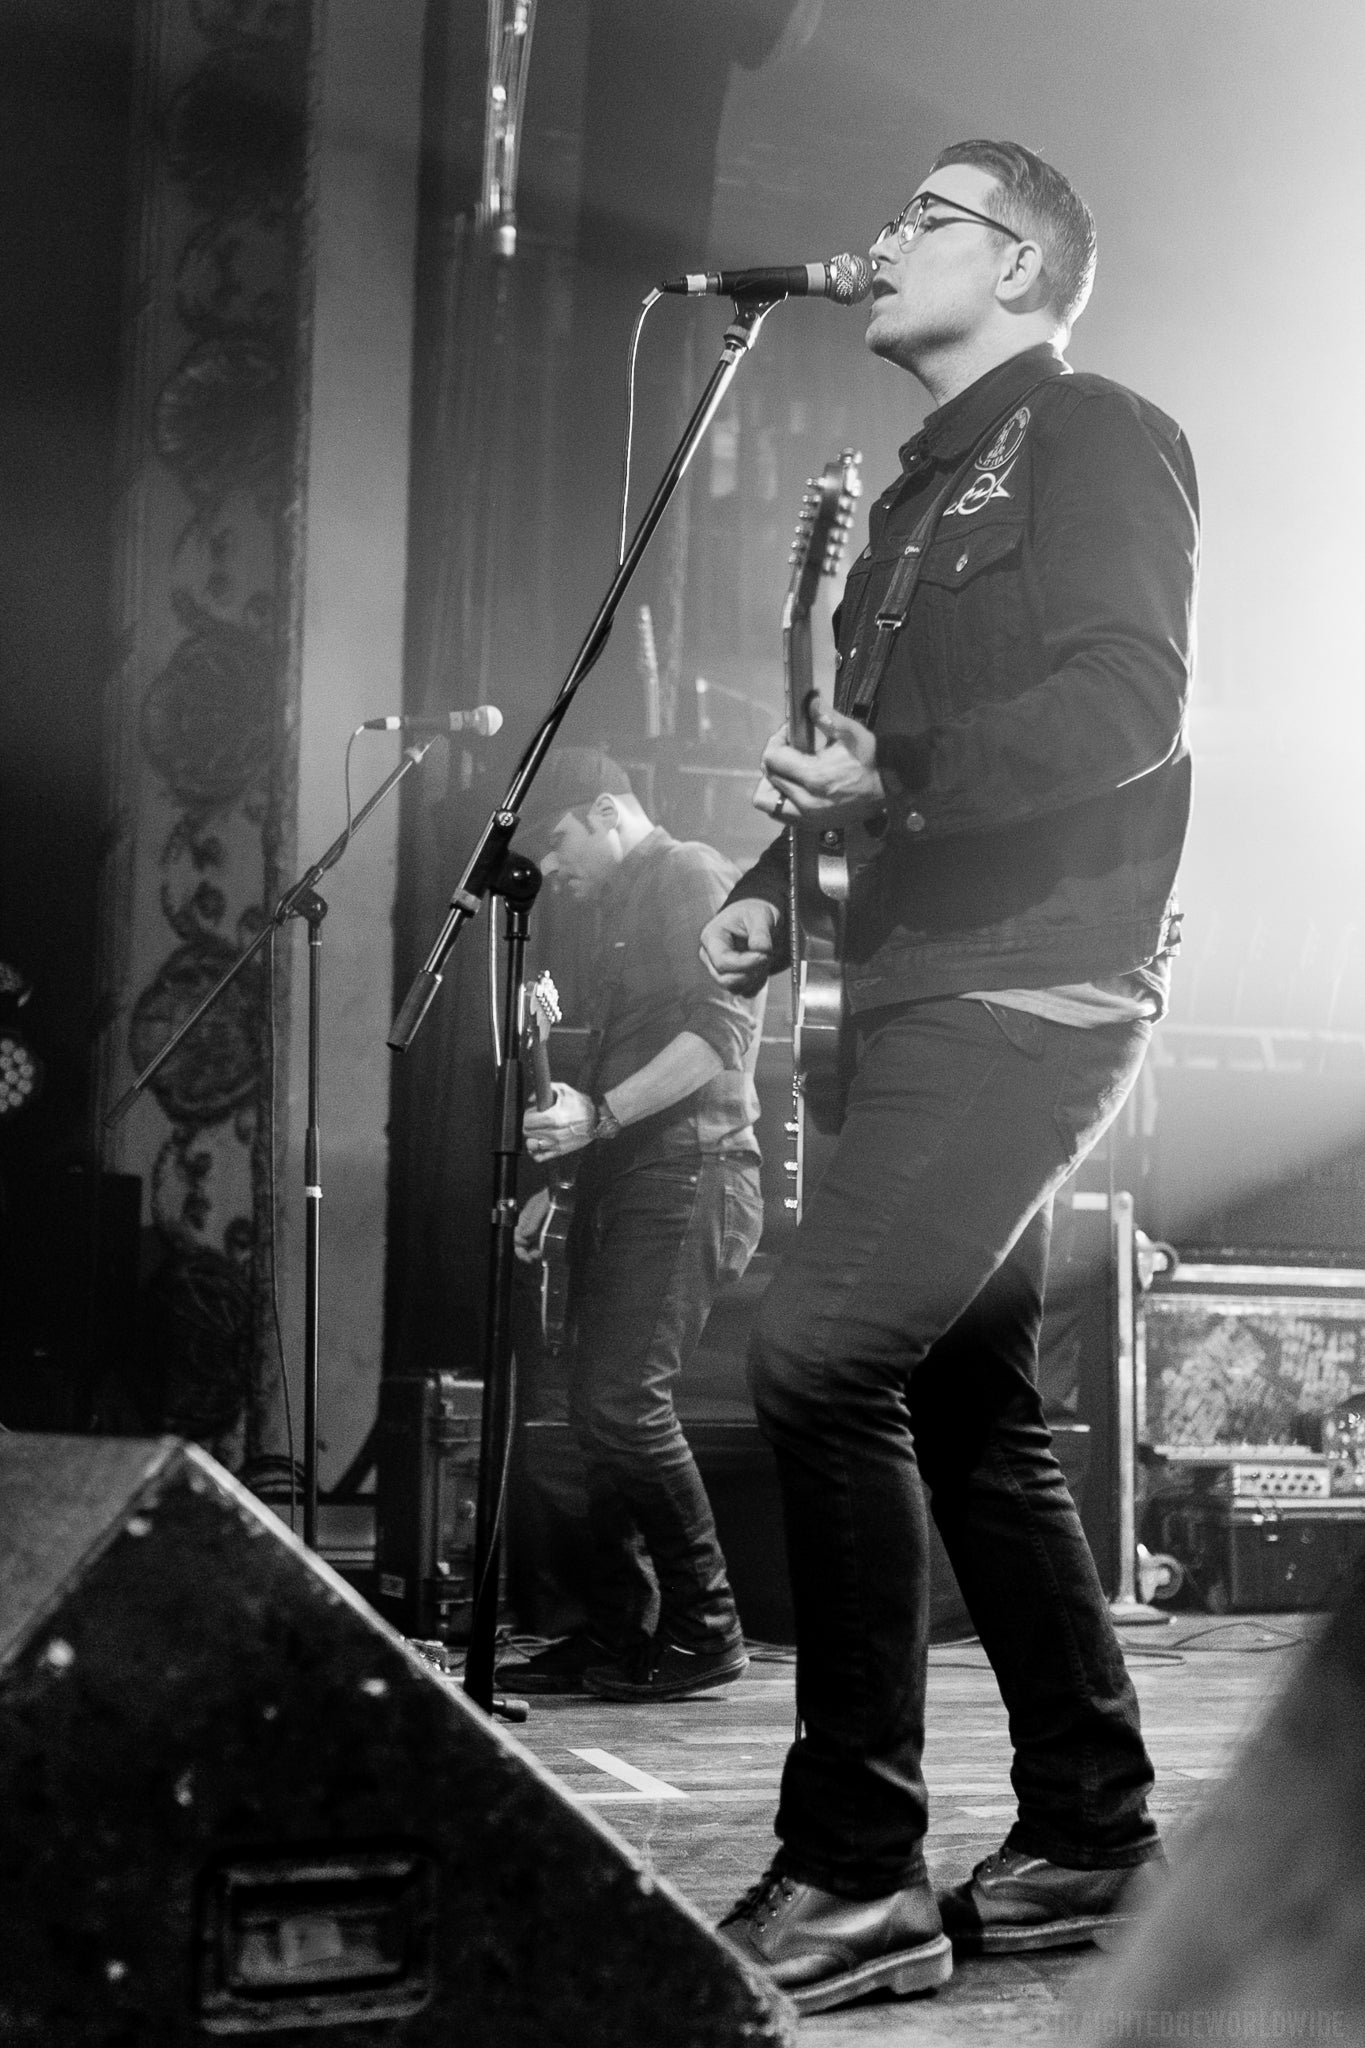 JT Woodruff of Hawthorne Heights, live at the Opera House in Toronto, December 16, 2018